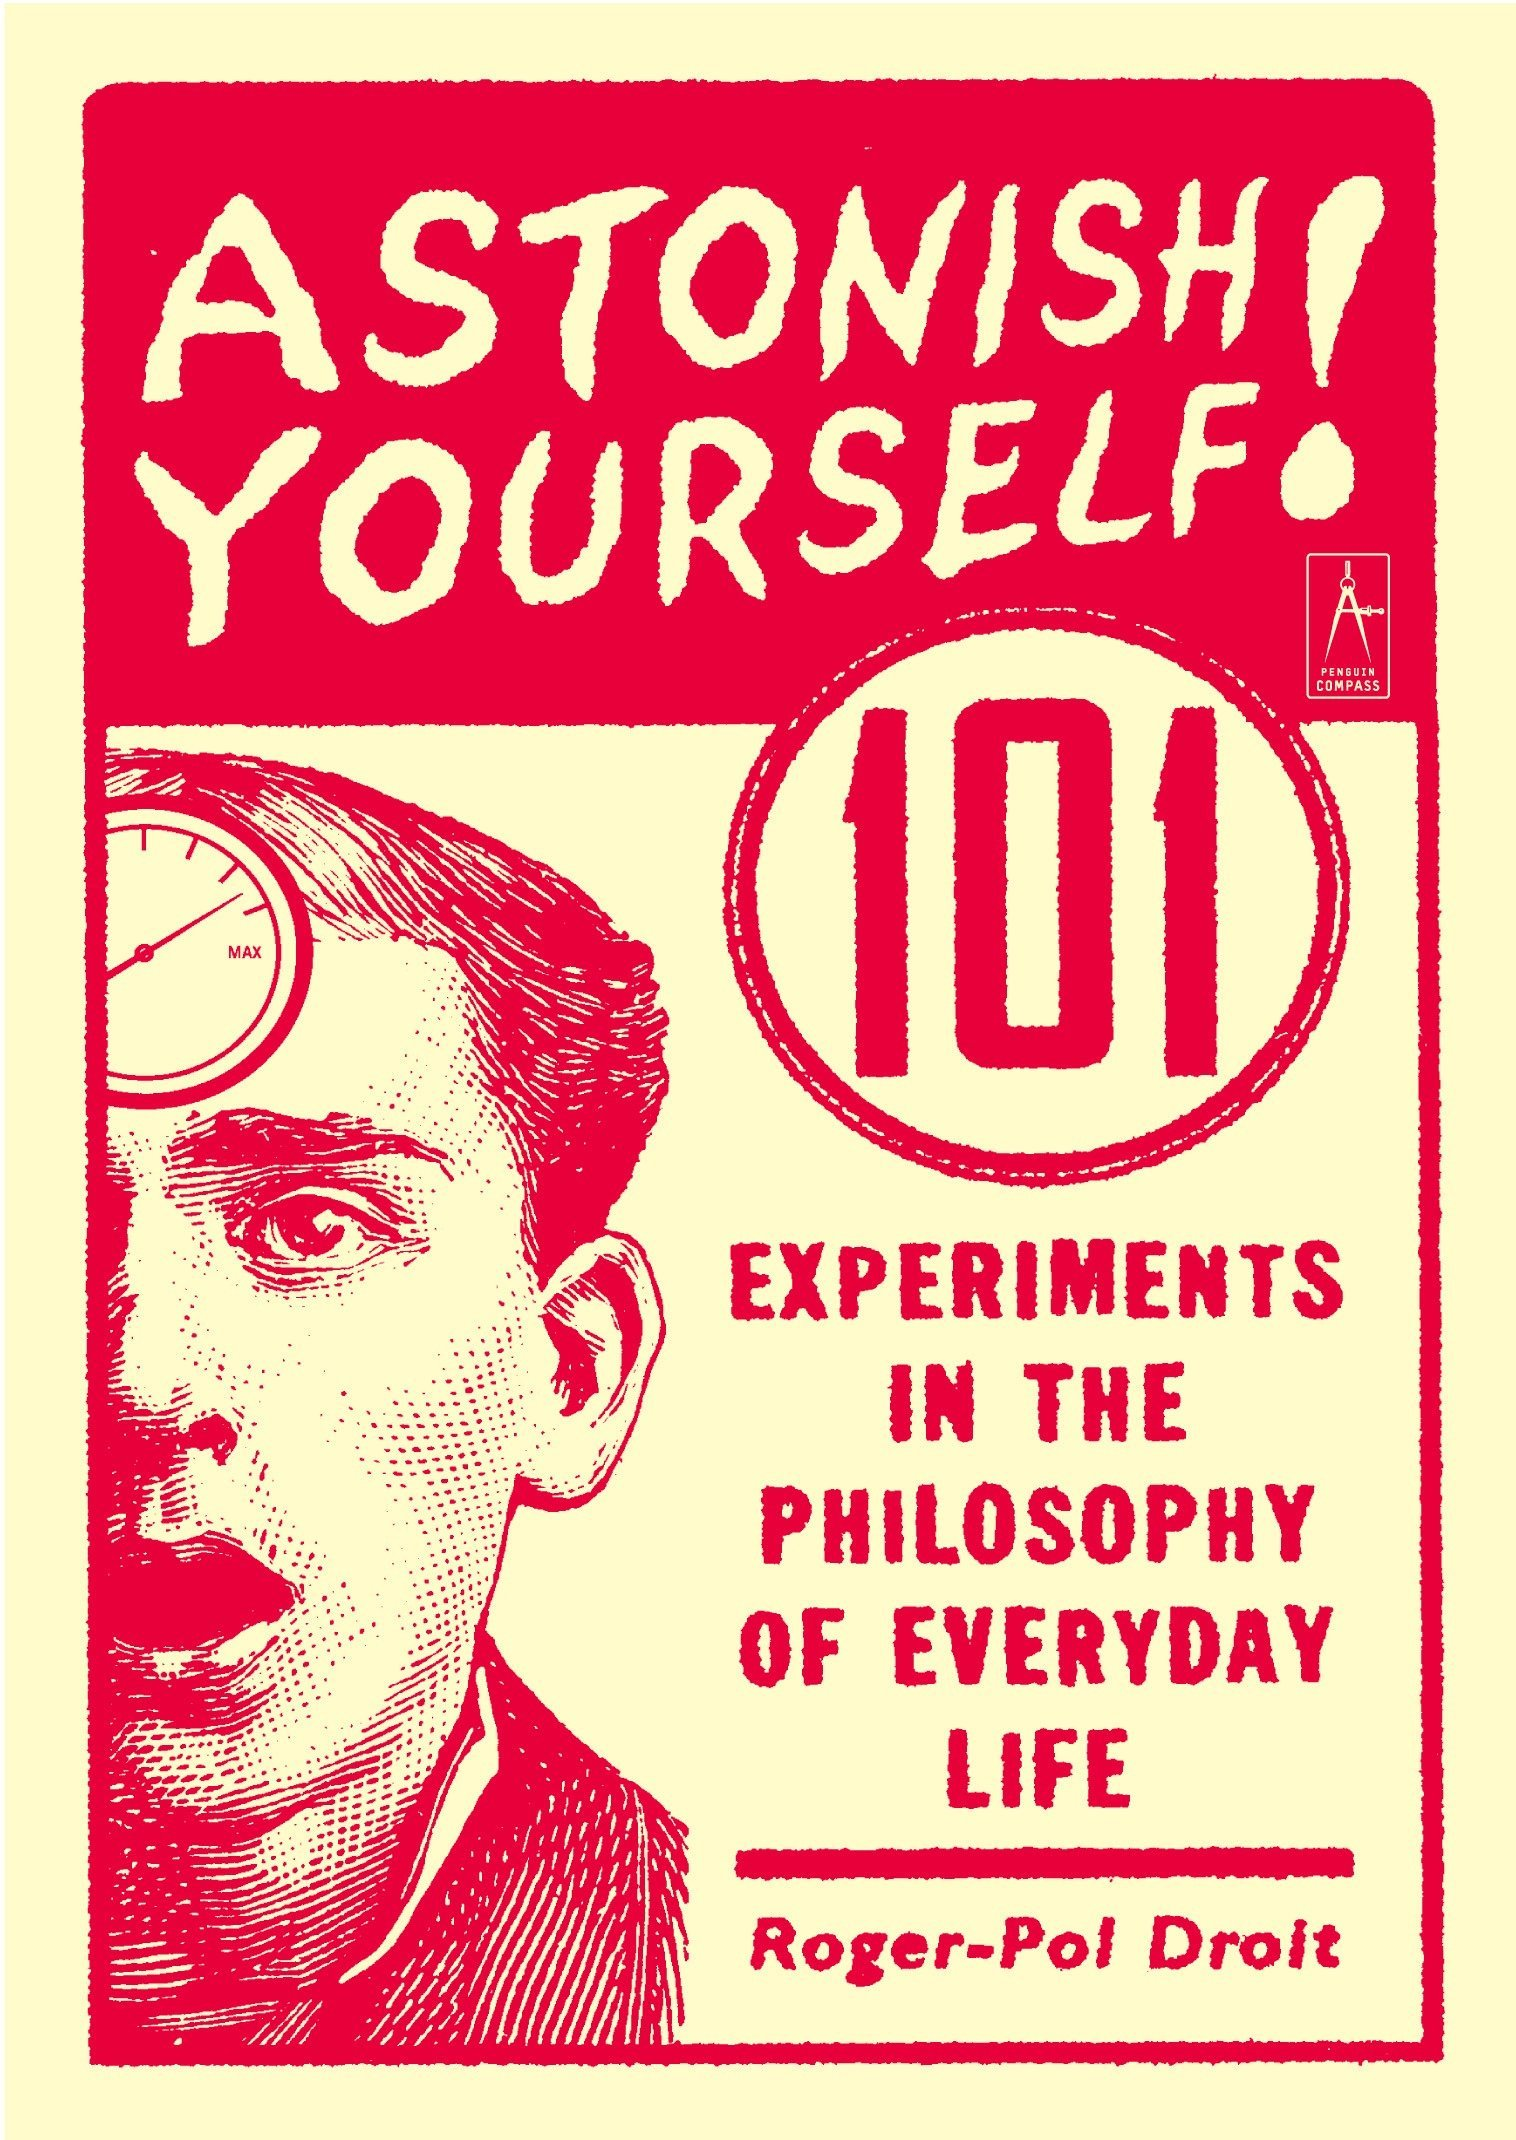 Astonish Yourself: 101 Experiments in the Philosophy of Everyday Life:  Amazon.co.uk: Roger-Pol Droit: 9780142003138: Books